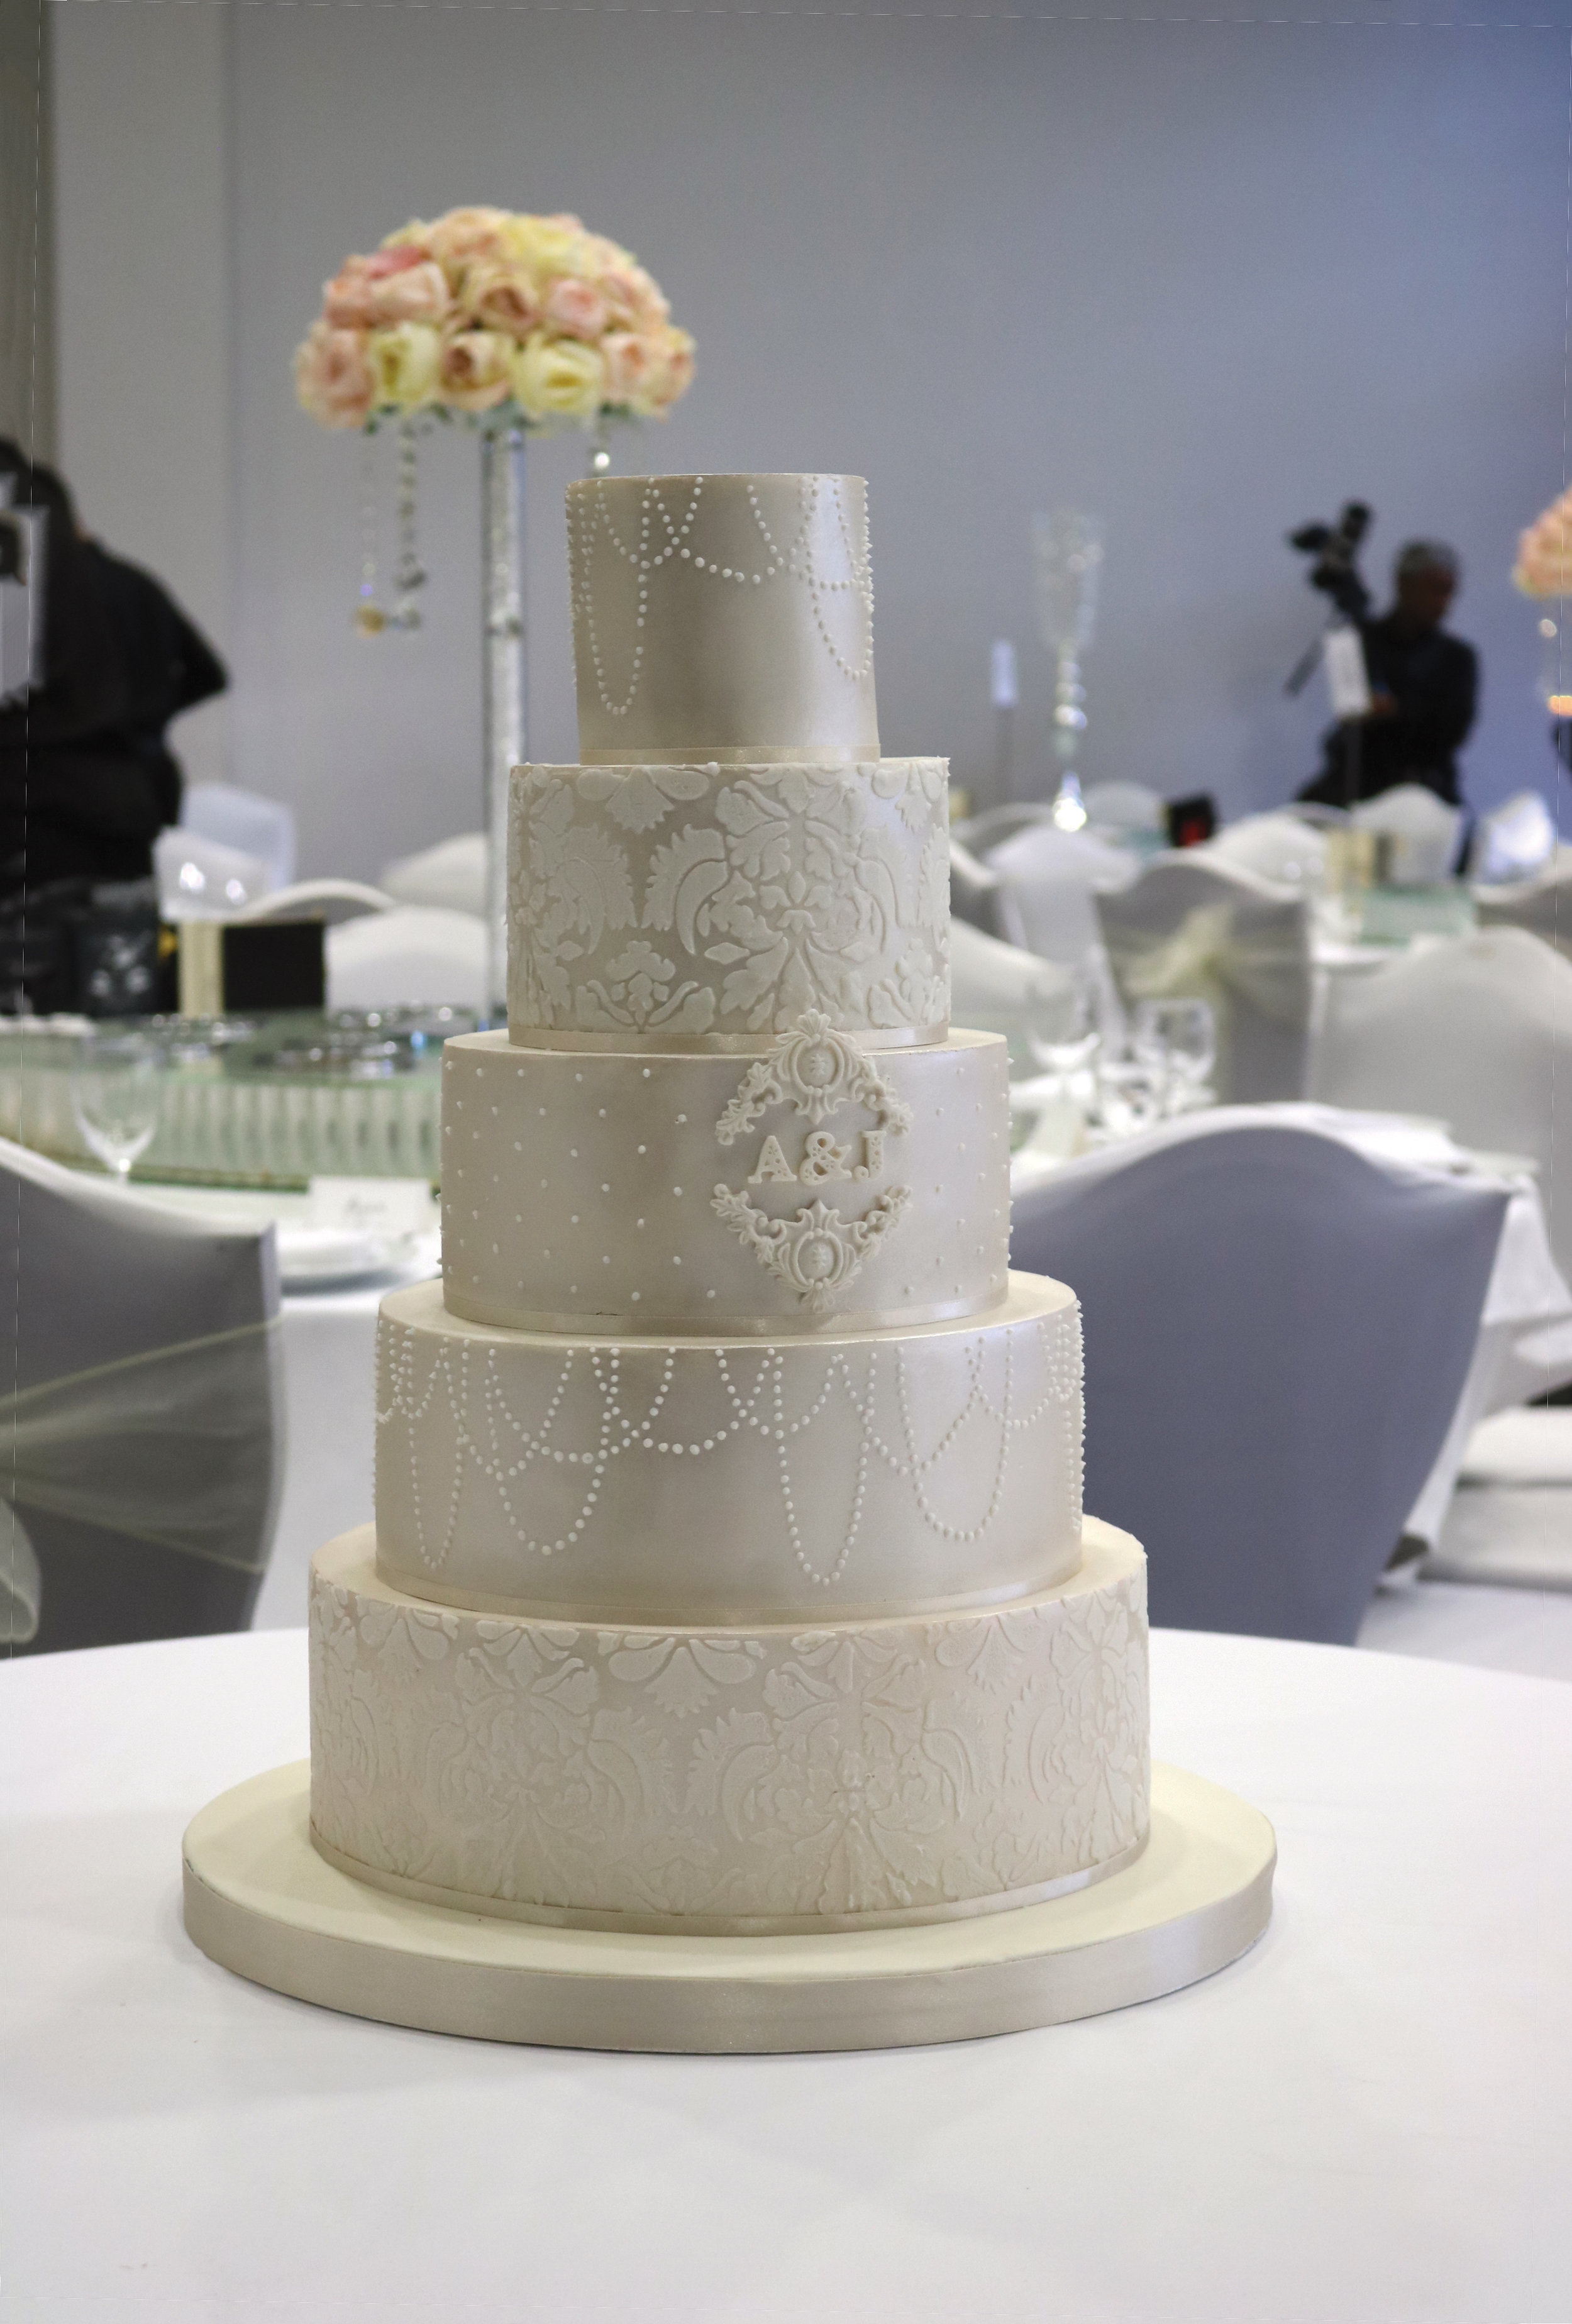 Satin lace wedding cake & monogram with pearl finish at for an asian wedding at Syon Hilton in Brentford, West London